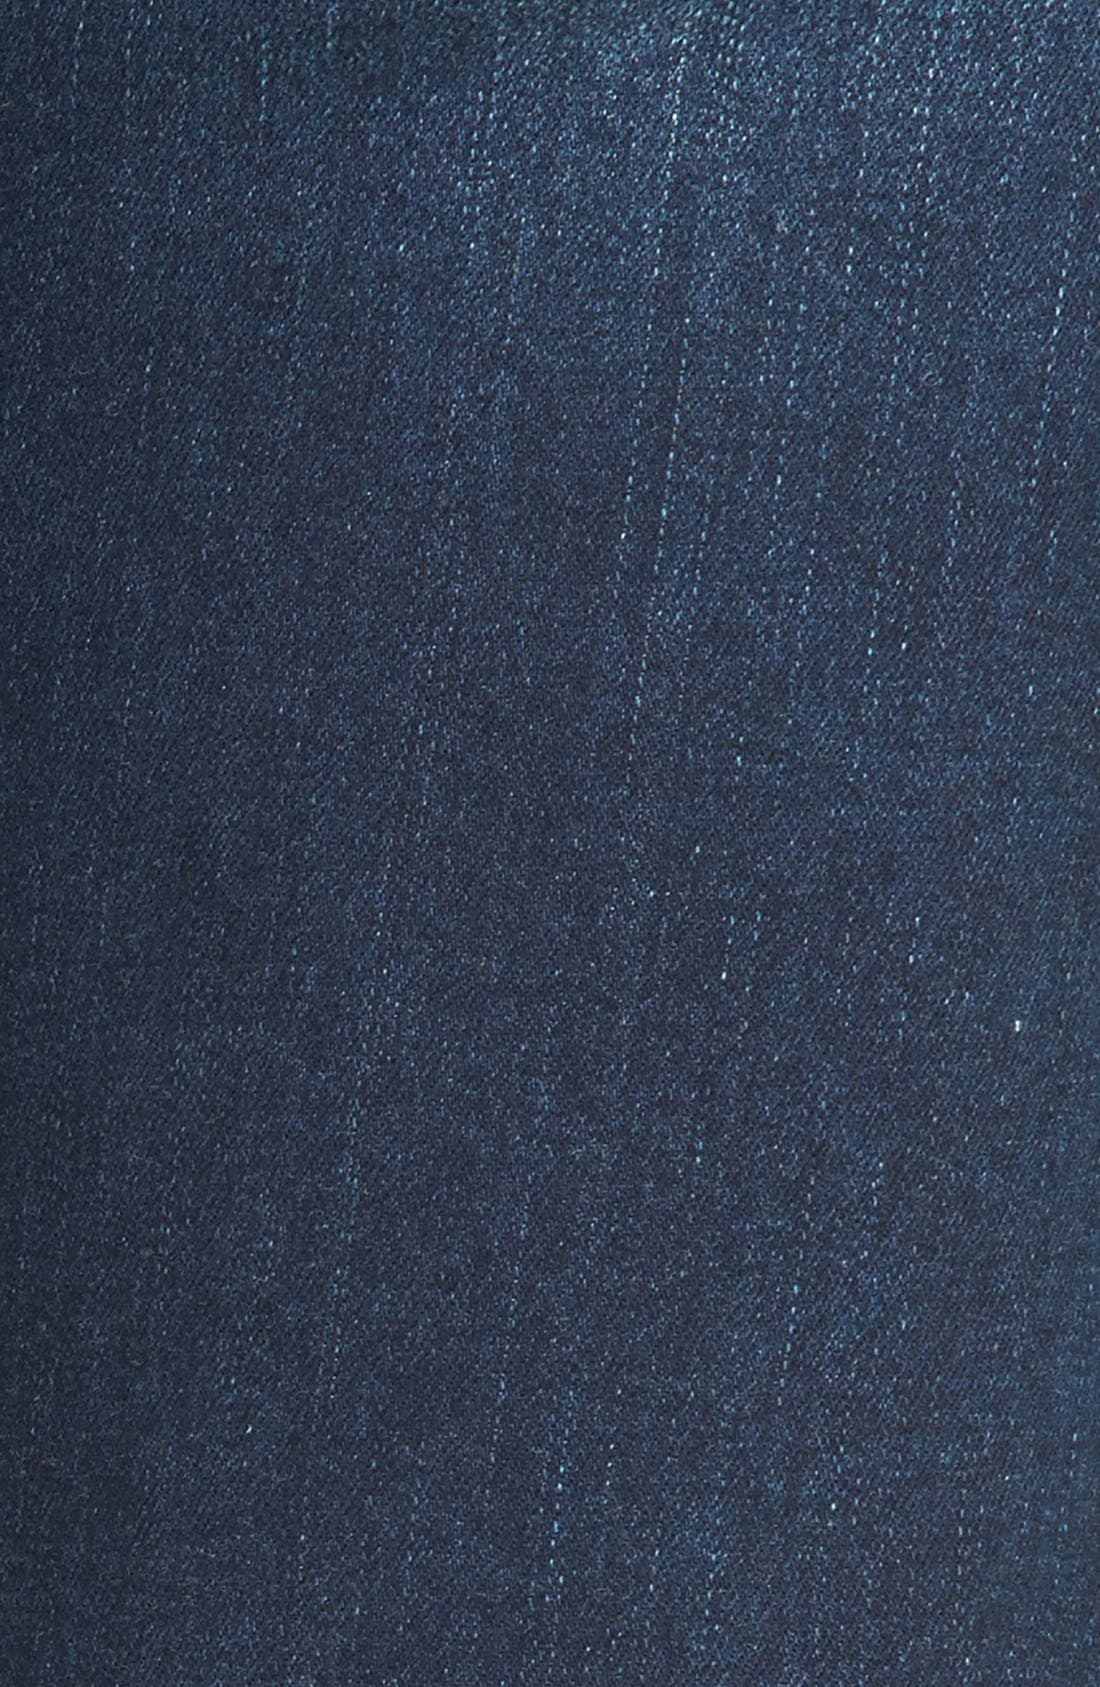 Alternate Image 3  - KUT from the Kloth 'Catherine' Boyfriend Jeans (Magnify) (Regular & Petite)